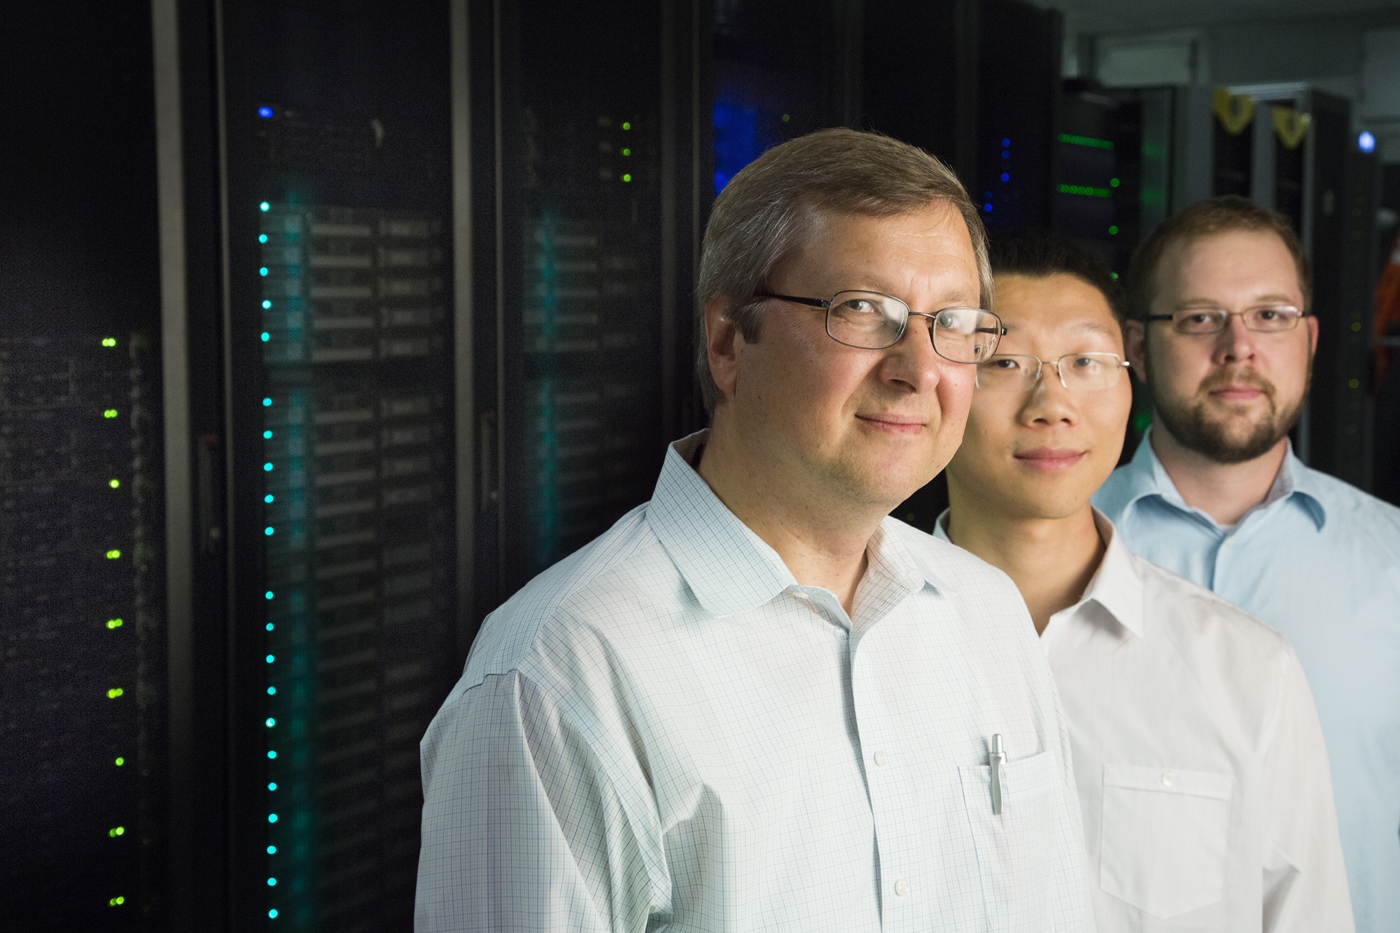 The UNL research team involved in the discovery includes (left) Evgeny Tsymbal, Yong Wang (now at the Pacific Northwest National Laboratory in Richland, Wash.) and J.D. Burton. In the background is a portion of the Holland Computing Center supercomputer.